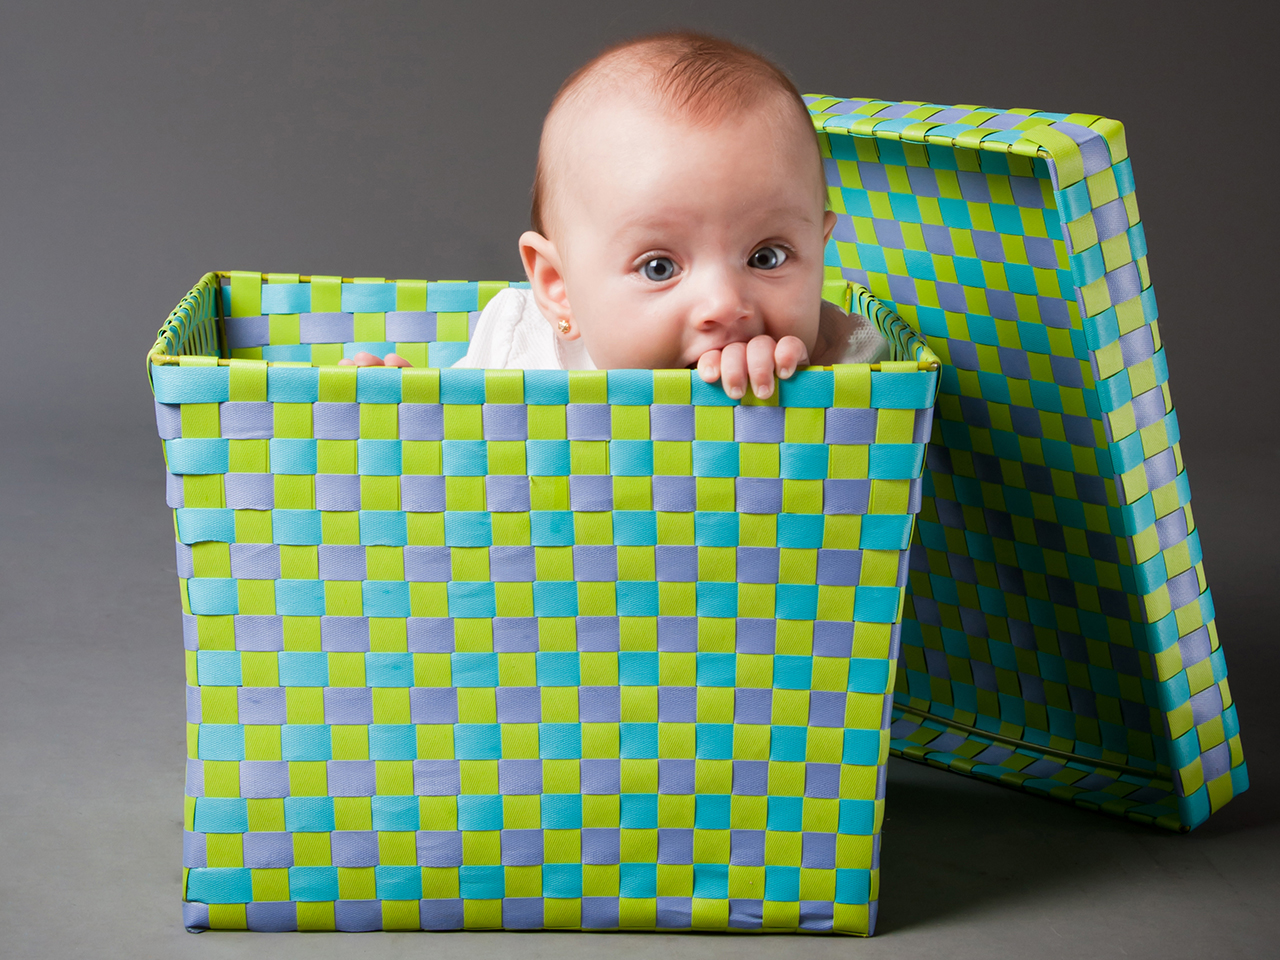 Baby sitting inside a colourful woven box